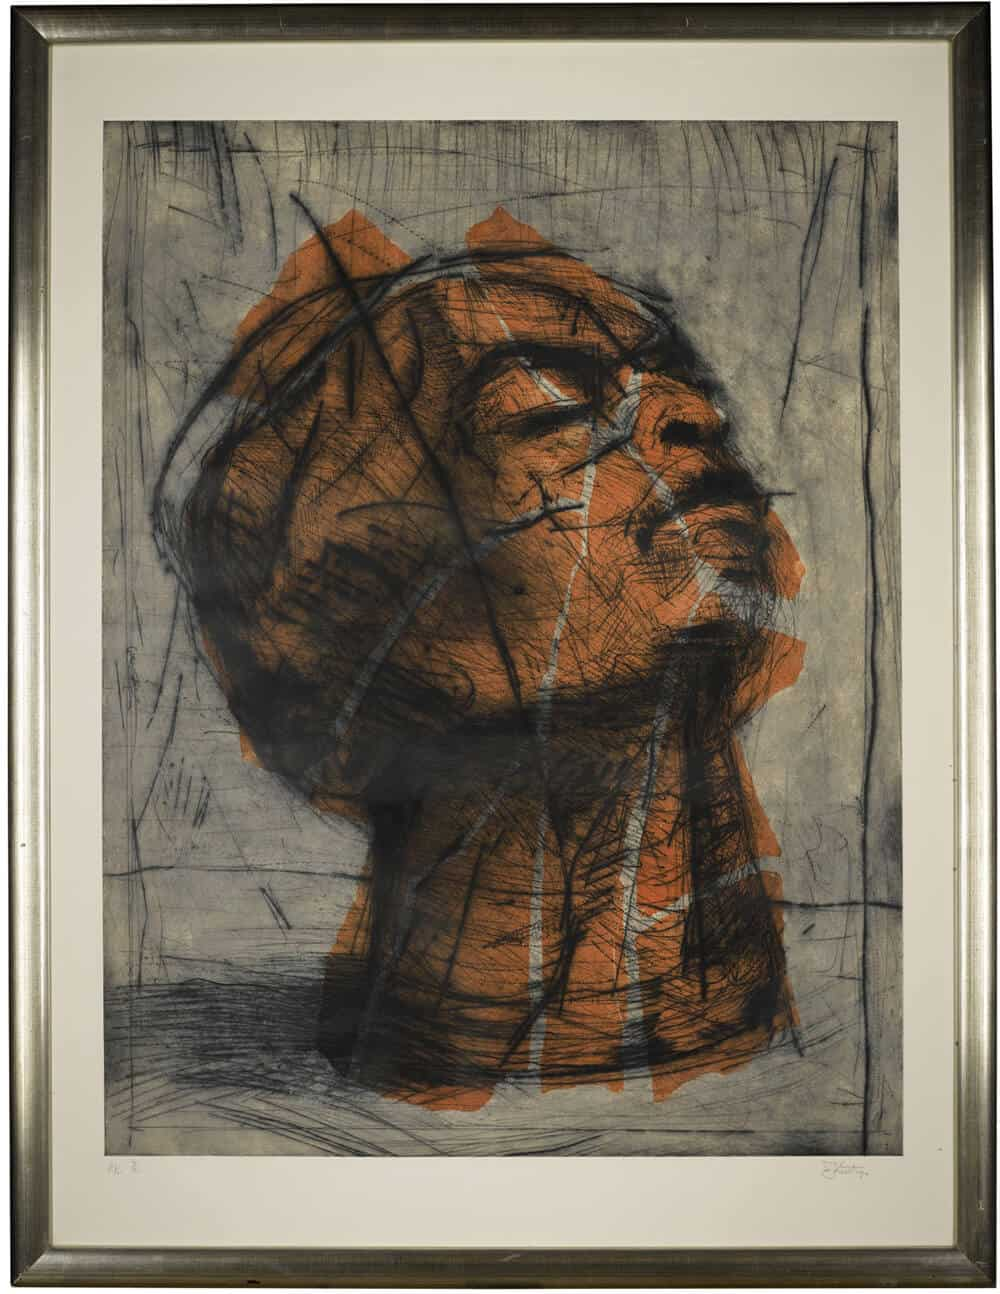 William Kentridge / Head (Orange) / £30,000-50,000 / Copyright: The Artist